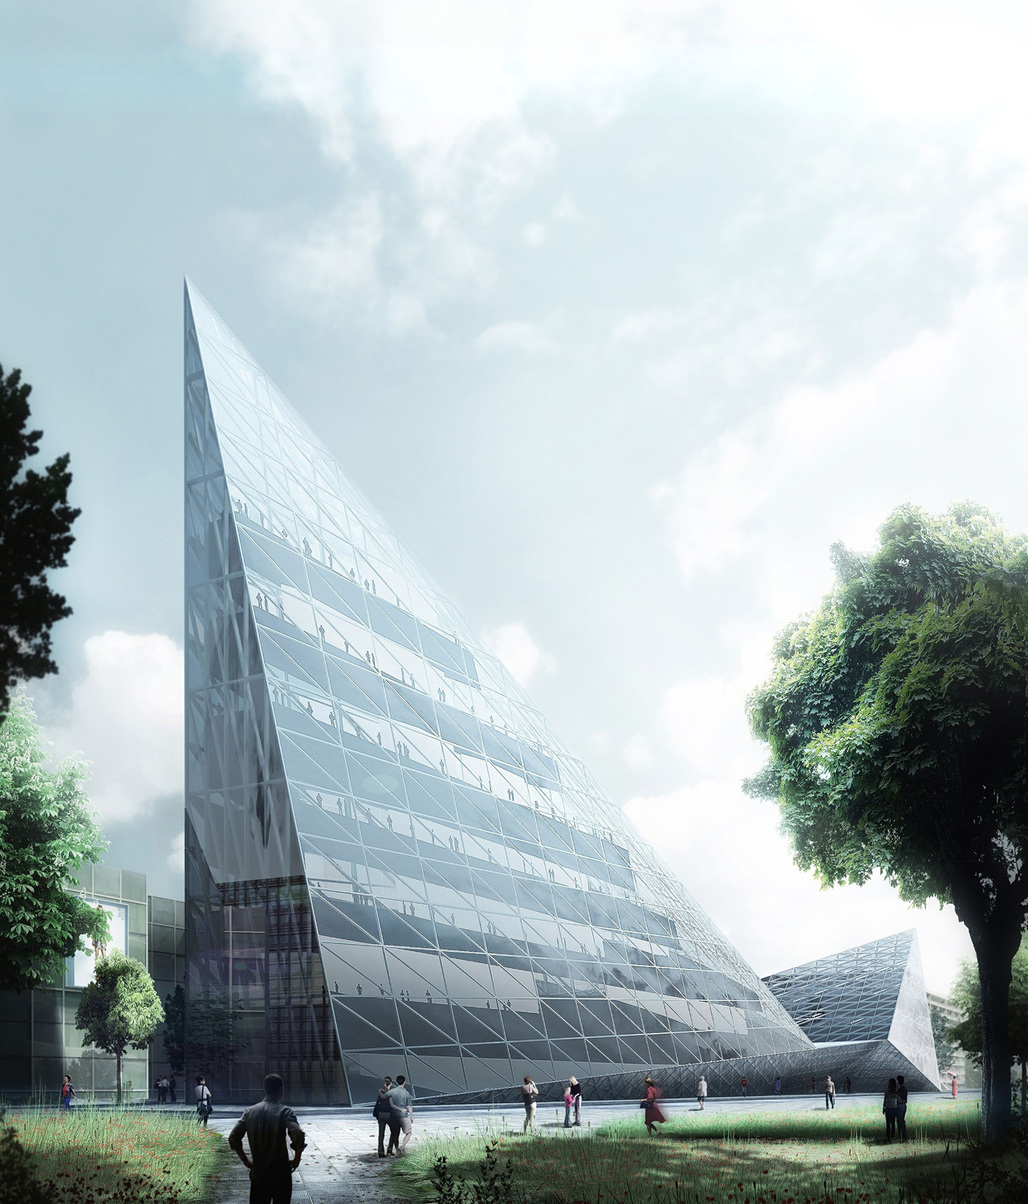 New NCCA (National Center for Contemporary Arts) competition entry by AND-RÉ. Image courtesy of AND-RÉ.